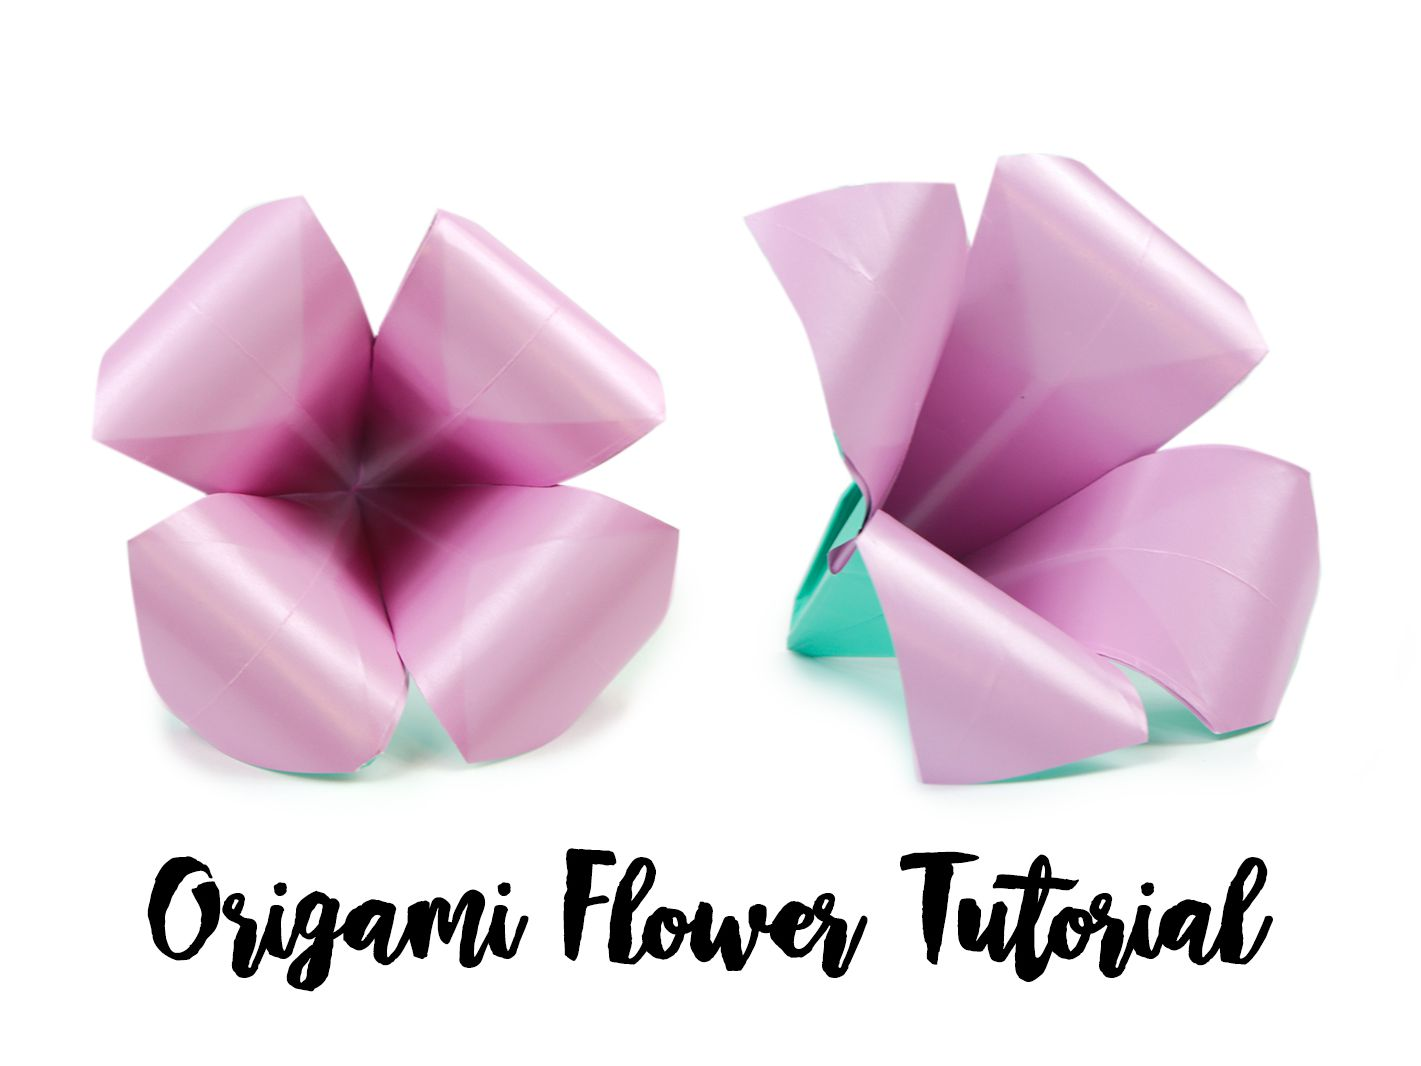 Paper flowers classroom craft activity: Easy make paper flowers + ... | 1066x1421